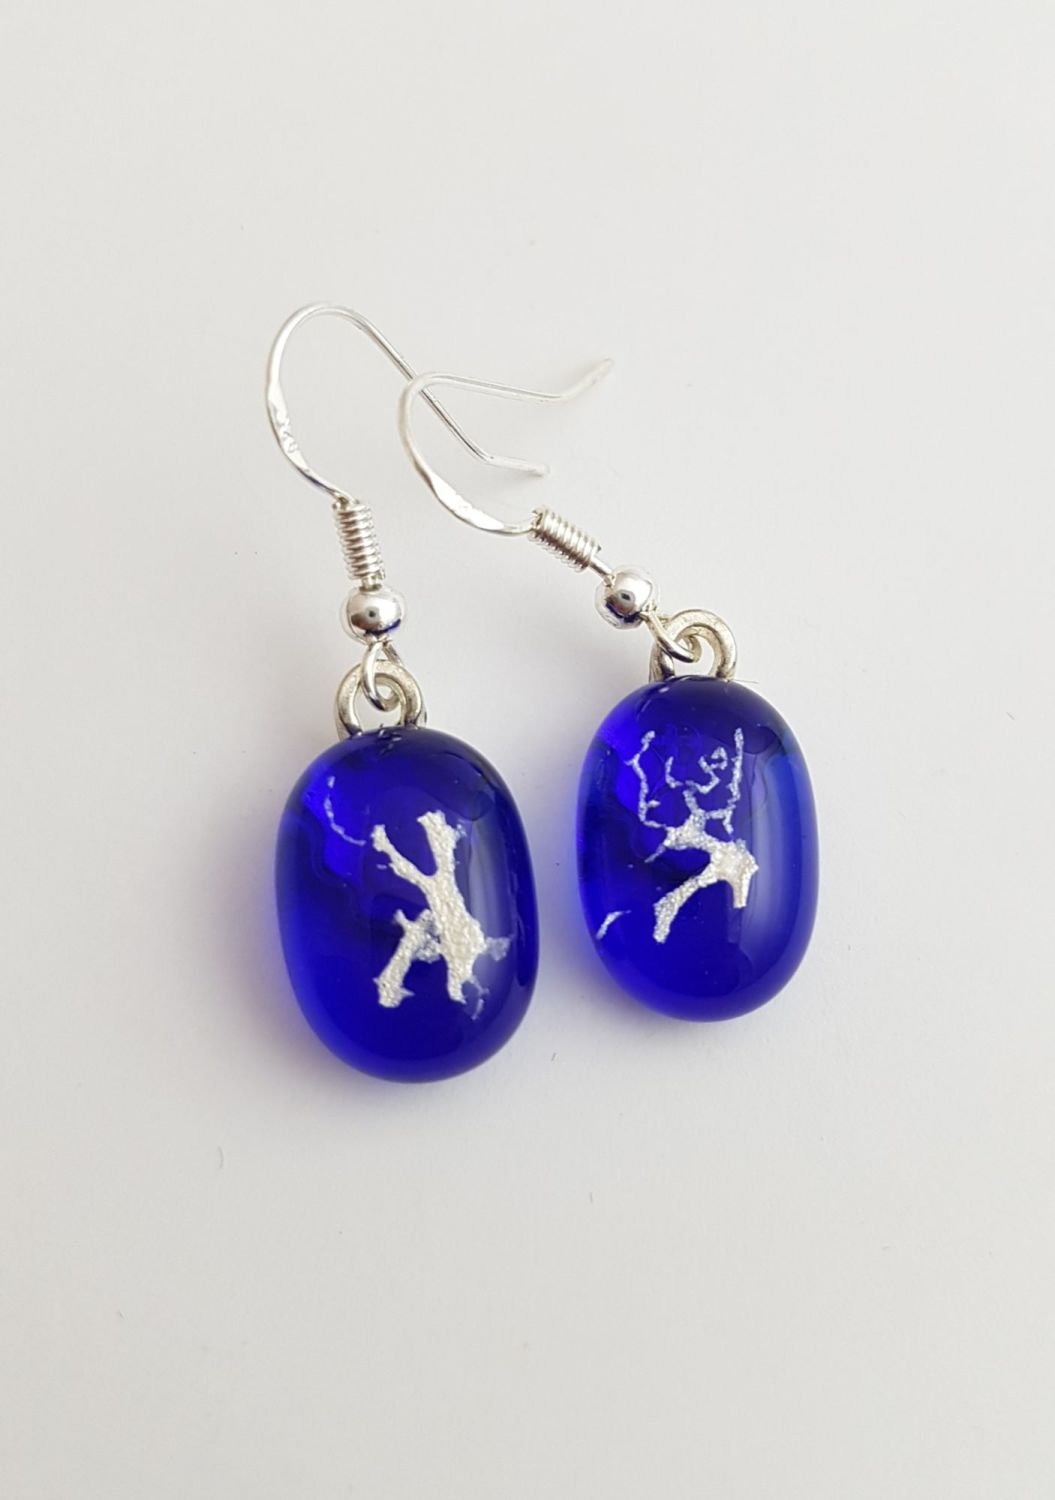 Mica - Cobalt blue with silver mica drop earrings